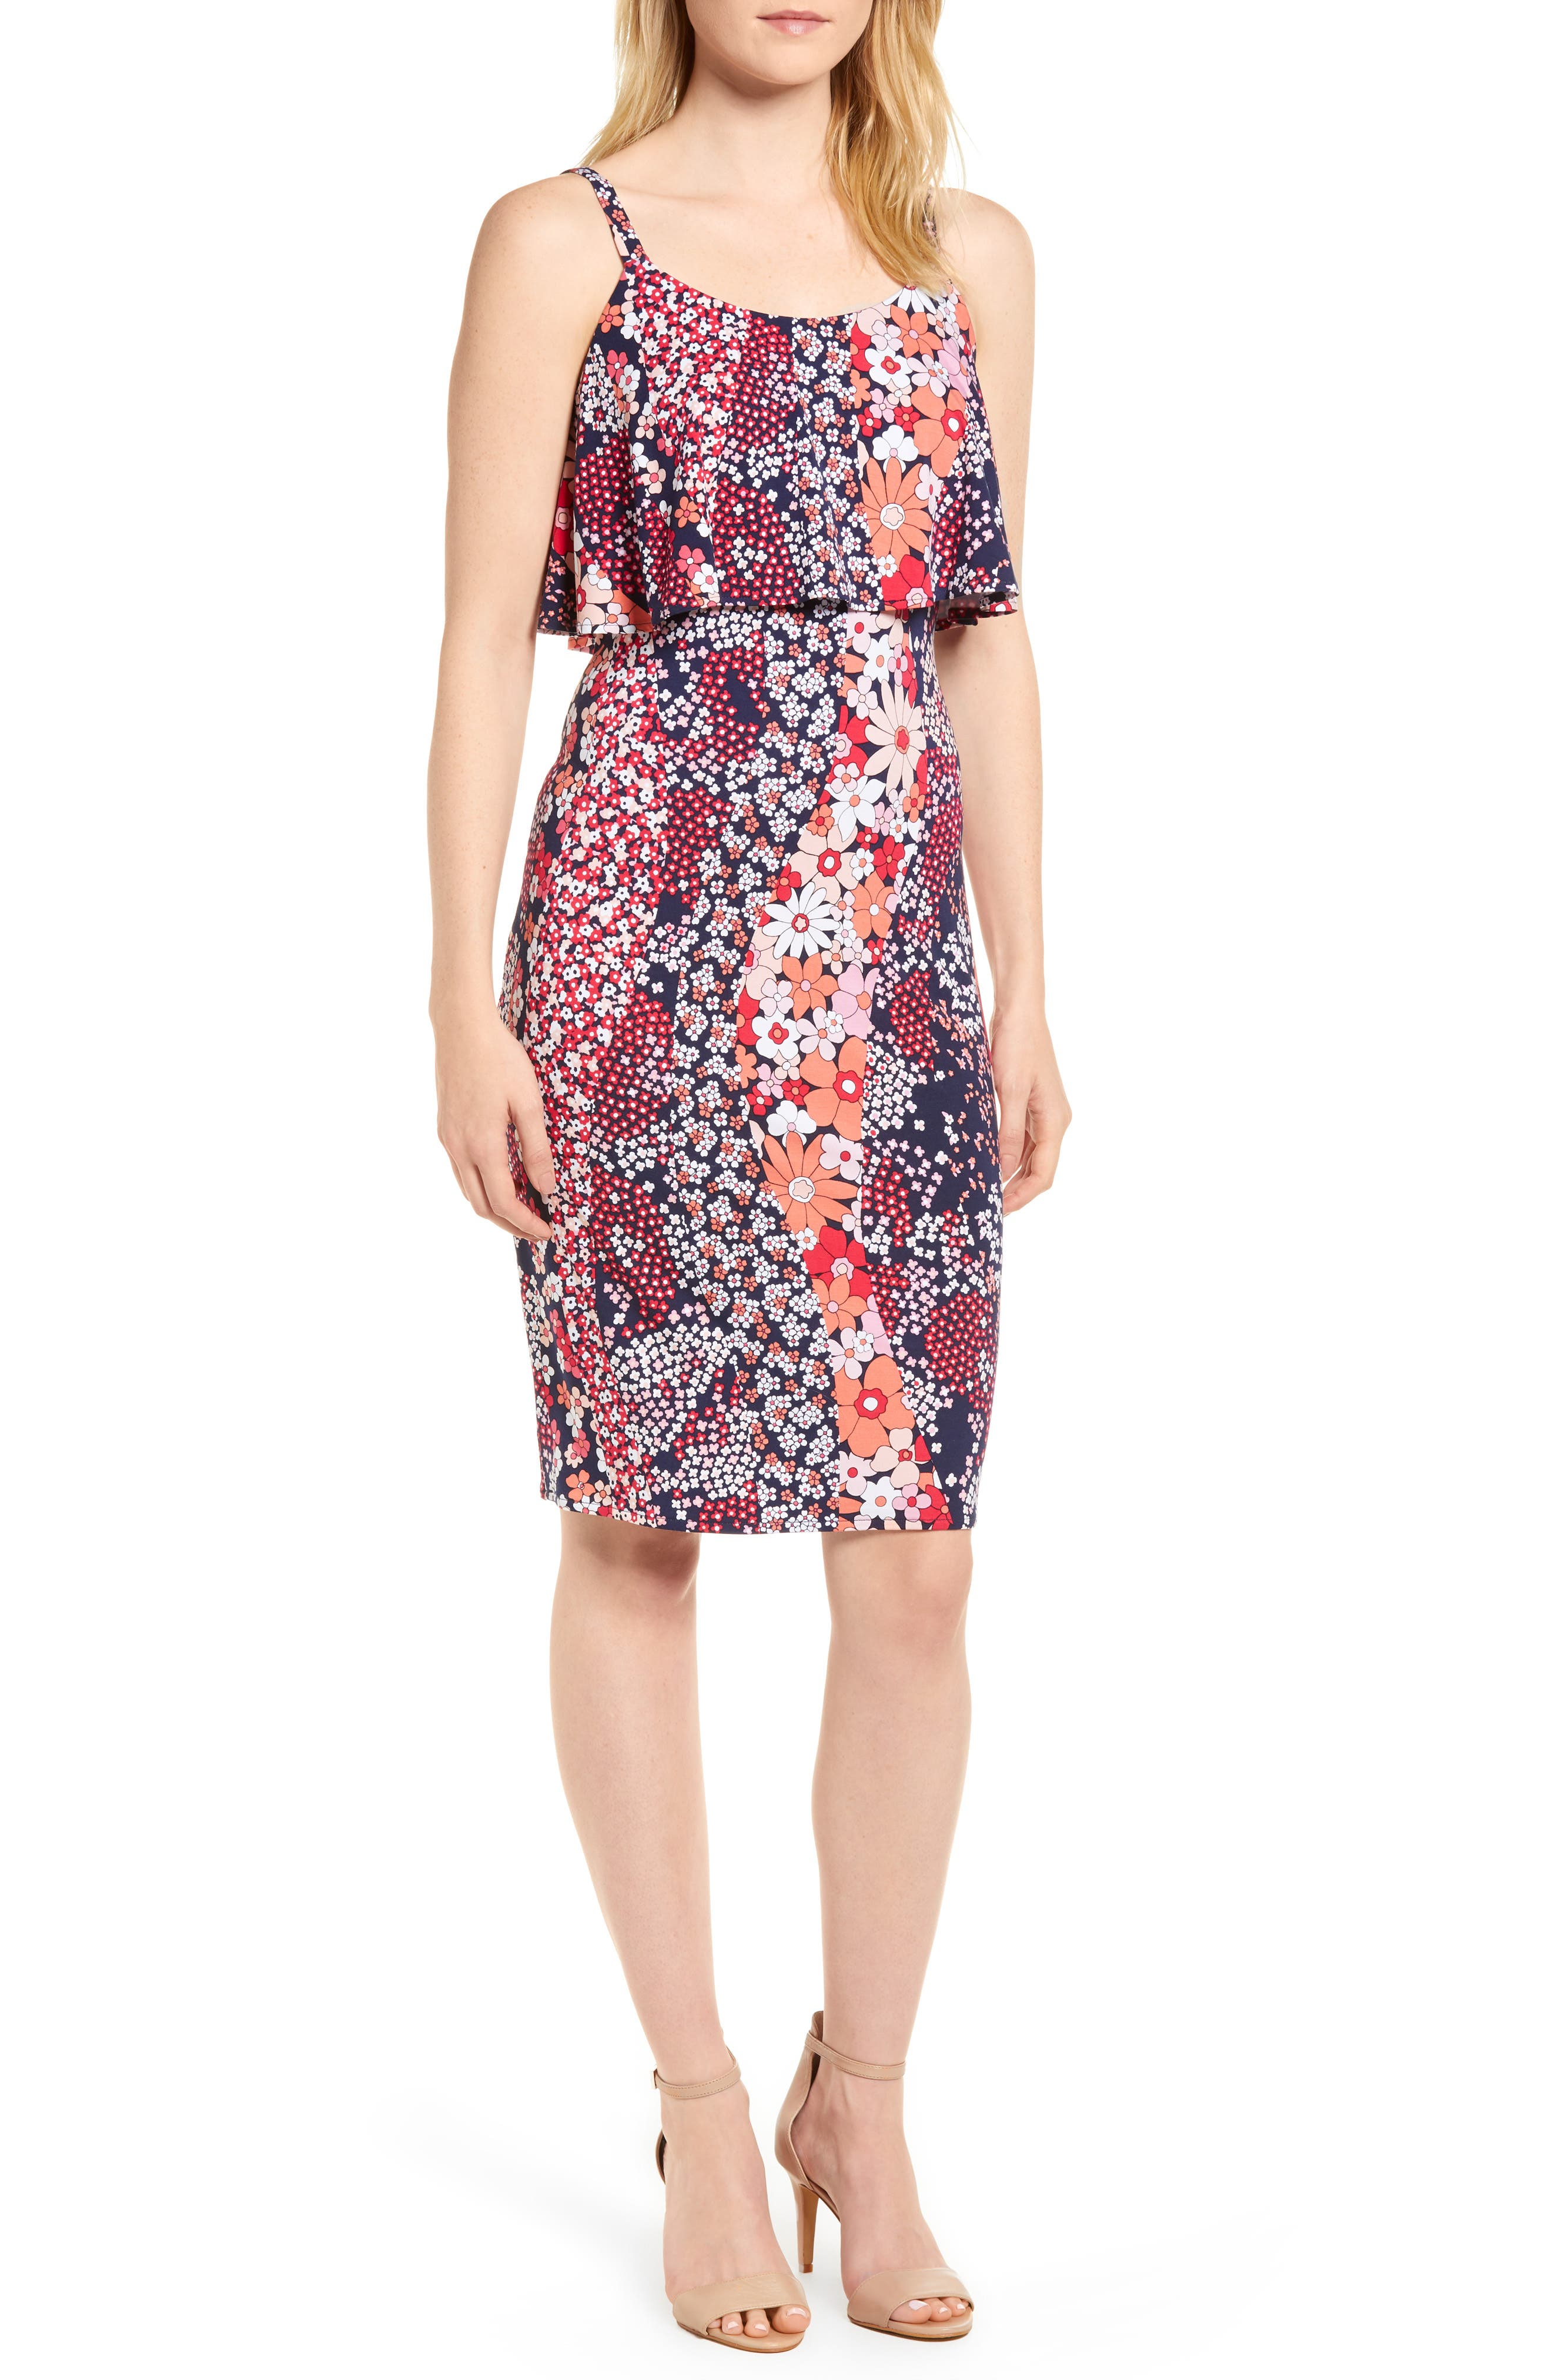 Print Floral Dress,                             Main thumbnail 1, color,                             678